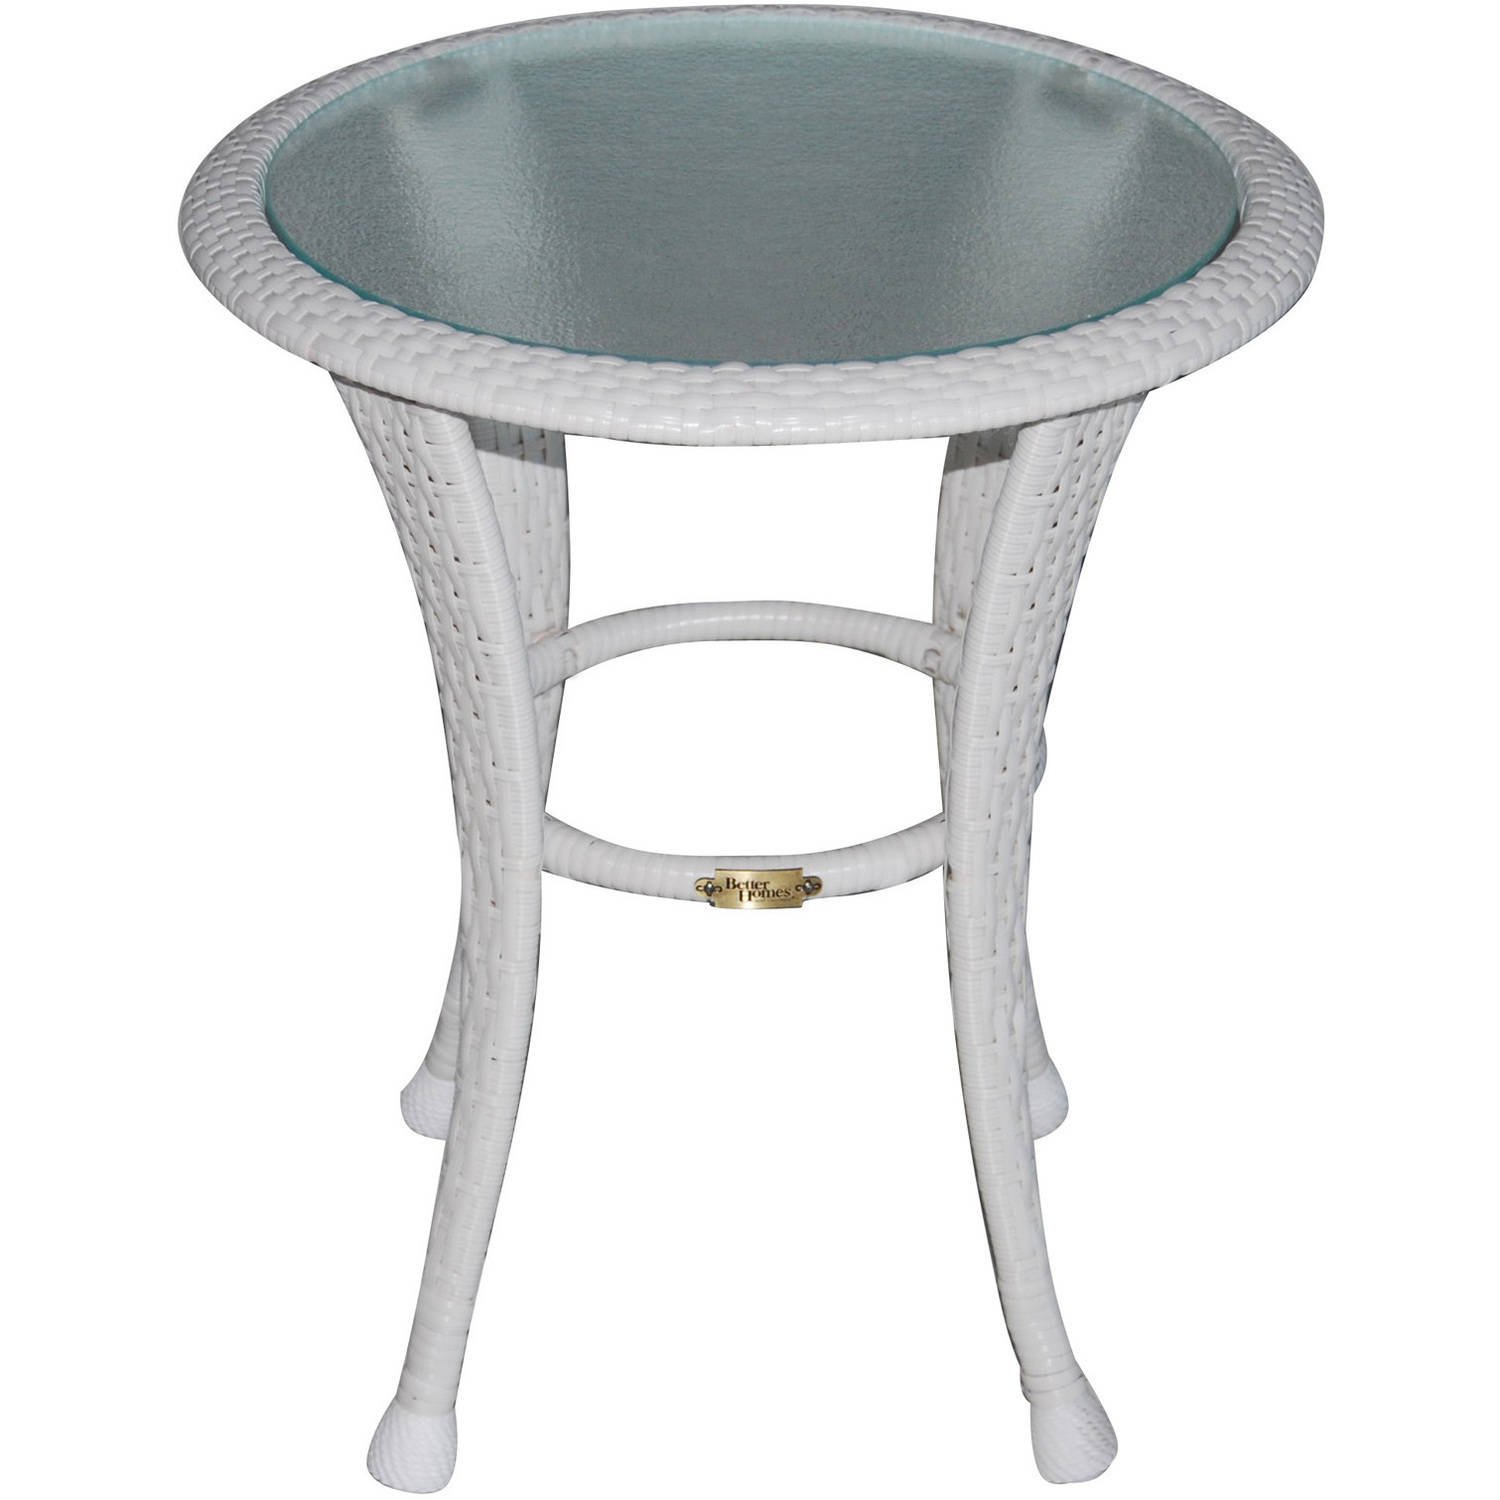 outdoor table better homes and gardens azalea ridge outdoor side table, white -  walmart.com zwbwivf